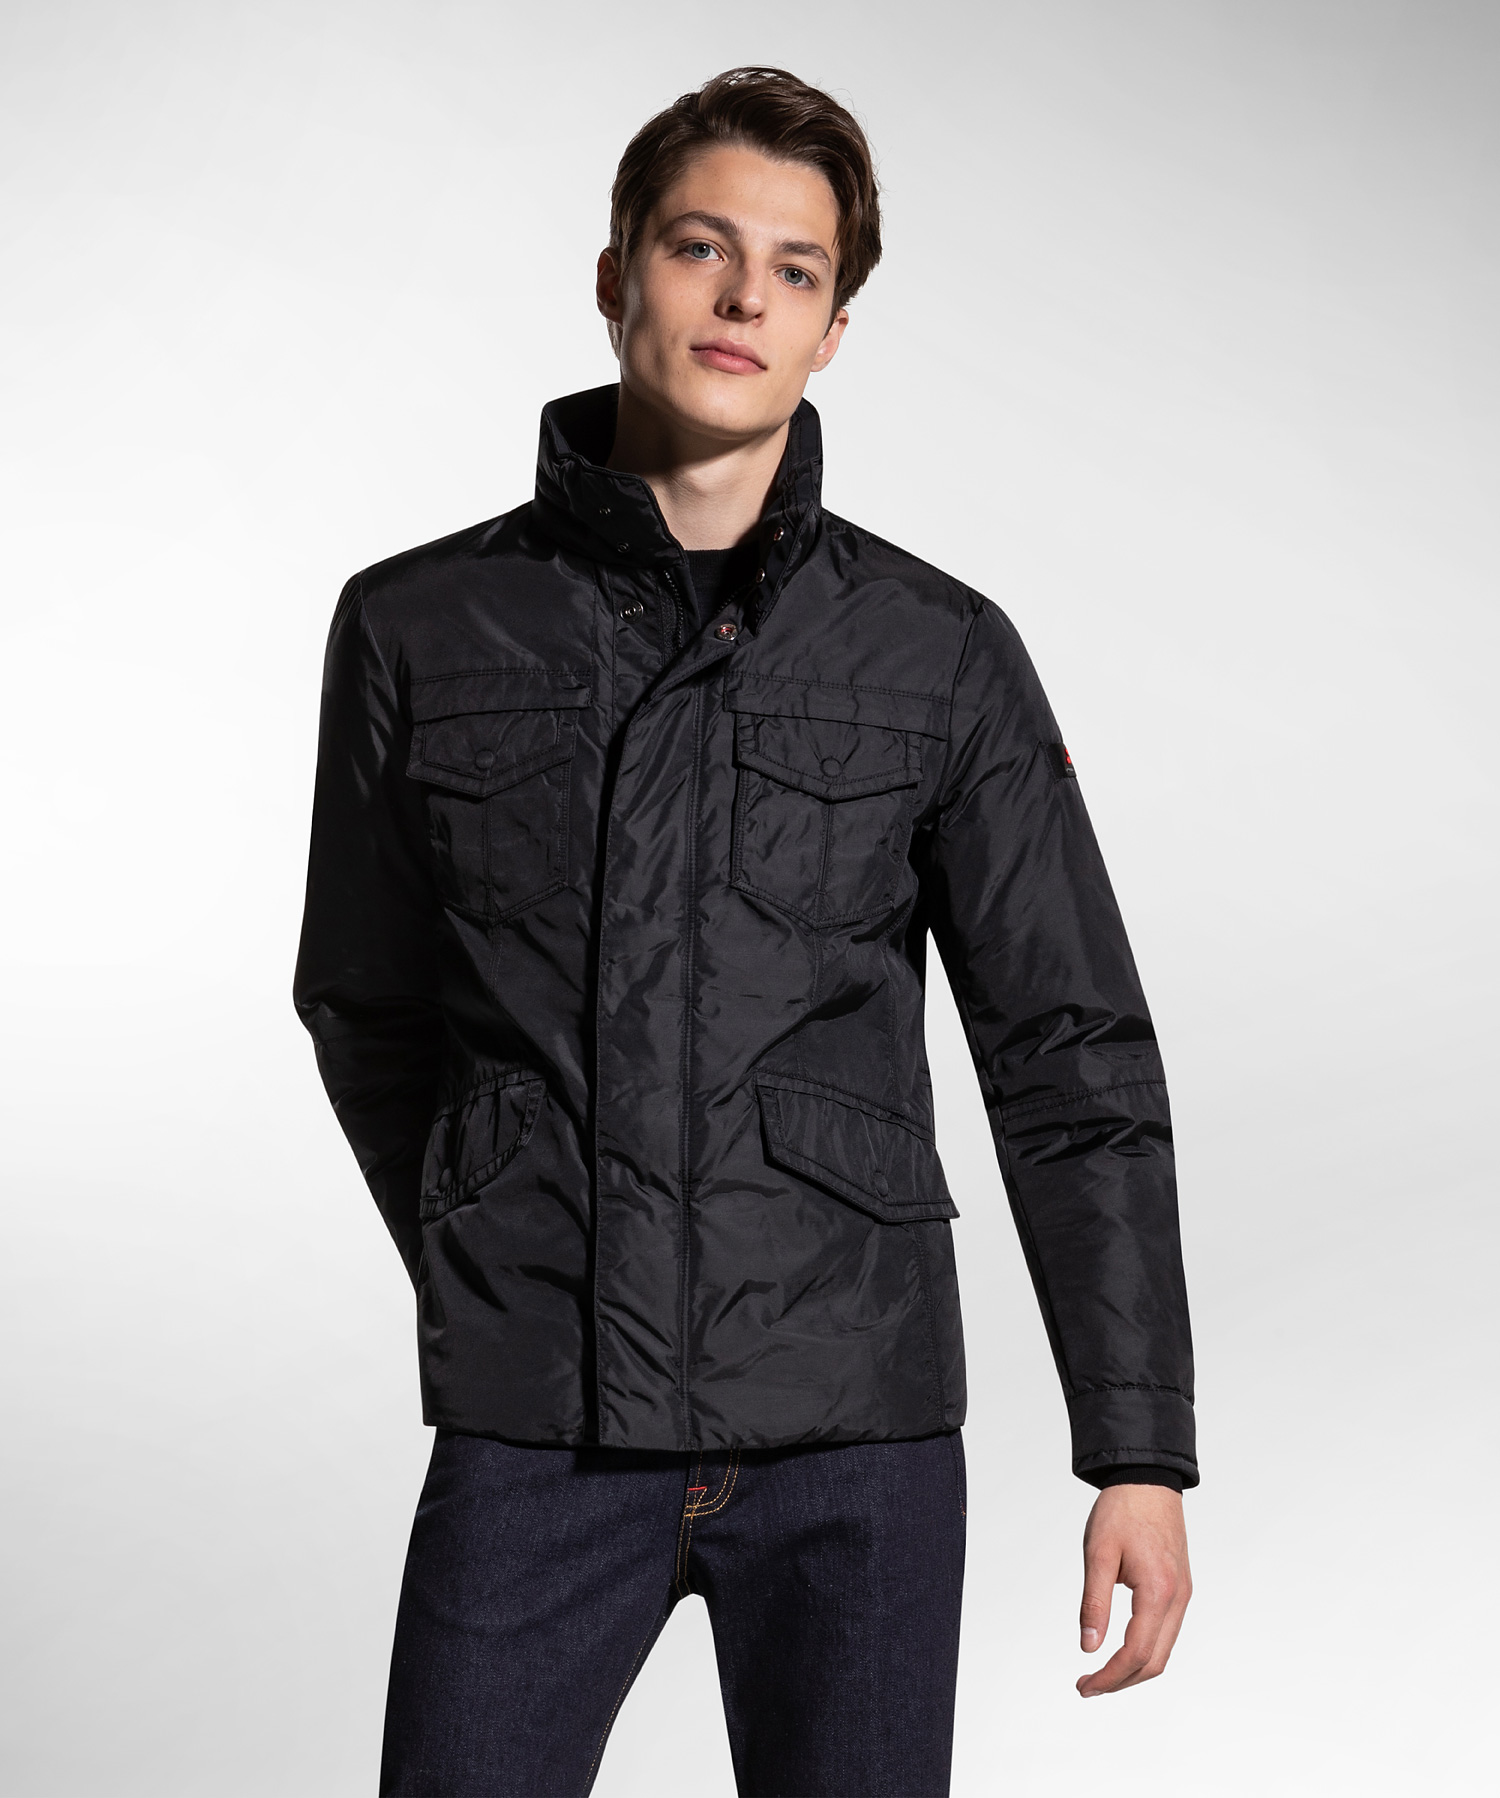 FIELD JACKET  PEUTEREY  IN OXFORD TECNICO STRIPES OXF 00